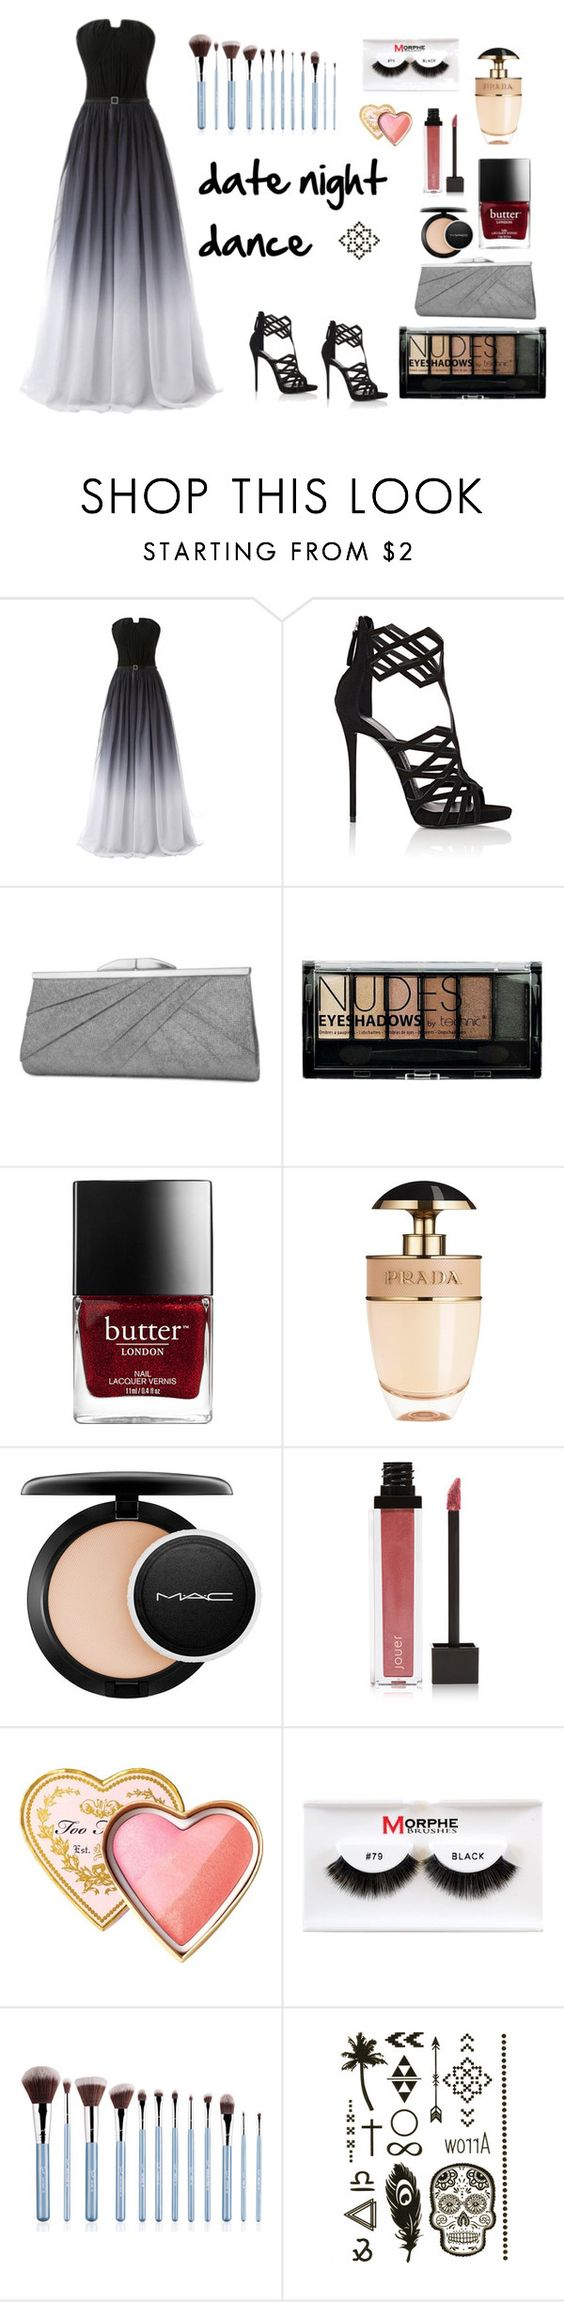 """Untitled #549"" by angelesghendo ❤ liked on Polyvore featuring Giuseppe Zanotti, Jessica McClintock, Boohoo, Prada, MAC Cosmetics, Jouer, Too Faced Cosmetics and Morphe"